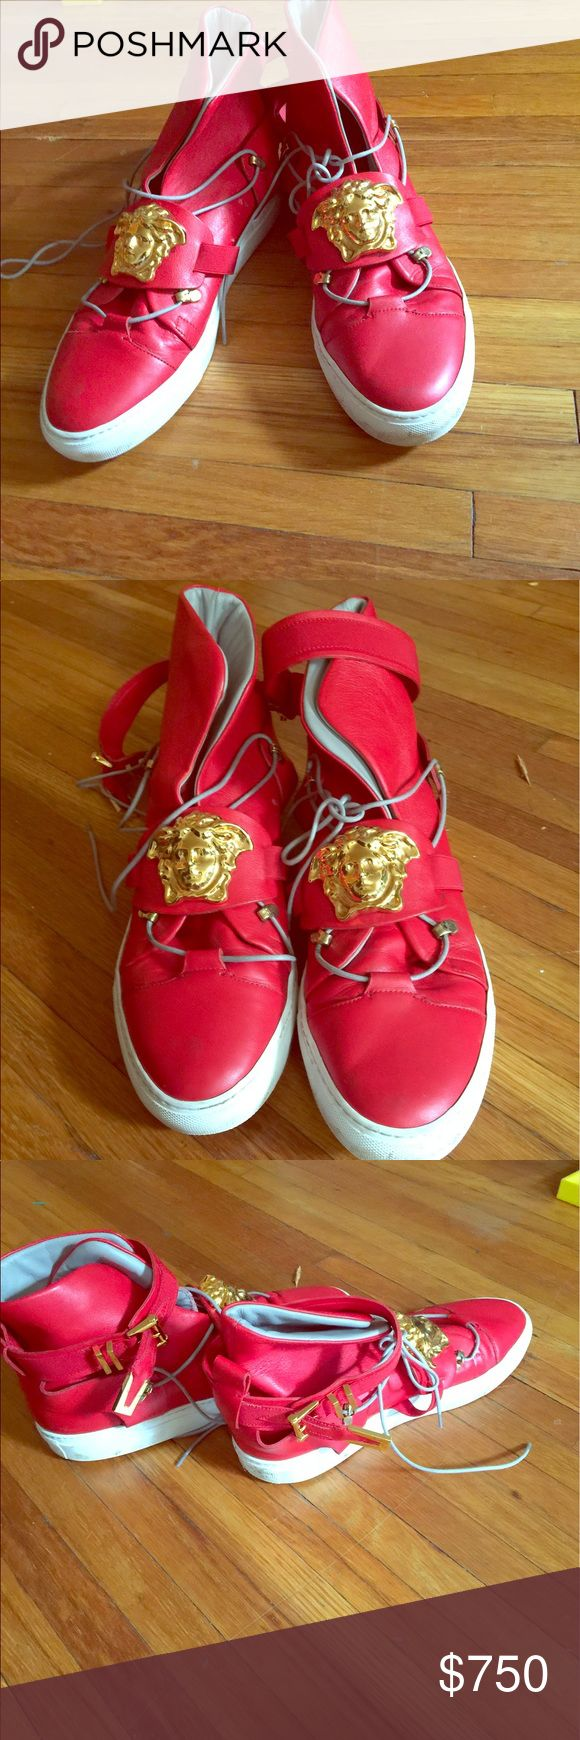 100 Percent Authentic !! Versace Sneakers 43 1/2 Red with gold emblem Versace sneakers size 43 1/2 100 percent authentic!!!! Versace Shoes Sneakers